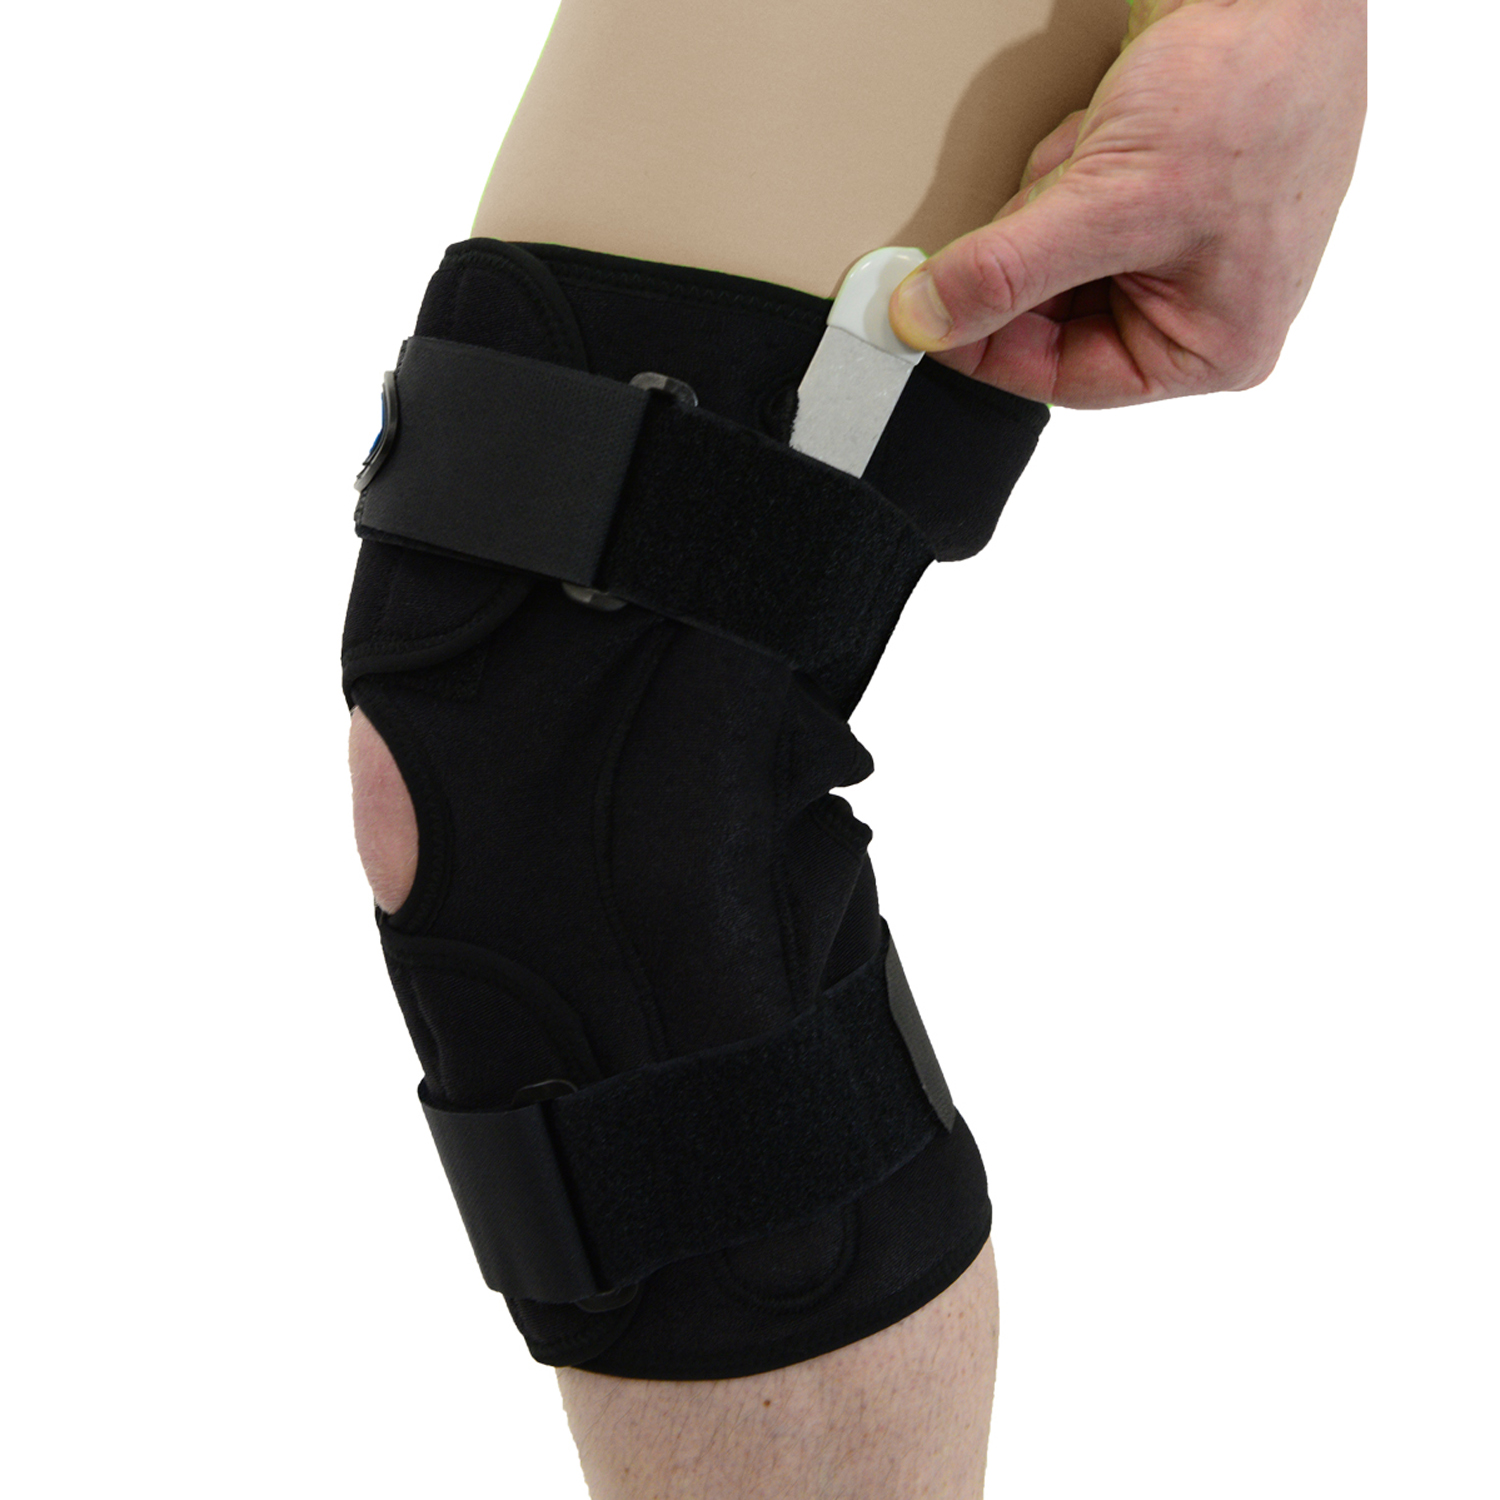 MAXAR Style KNS-140 Airprene Wrap – Around Knee Brace (Double – Pivot Hinge)